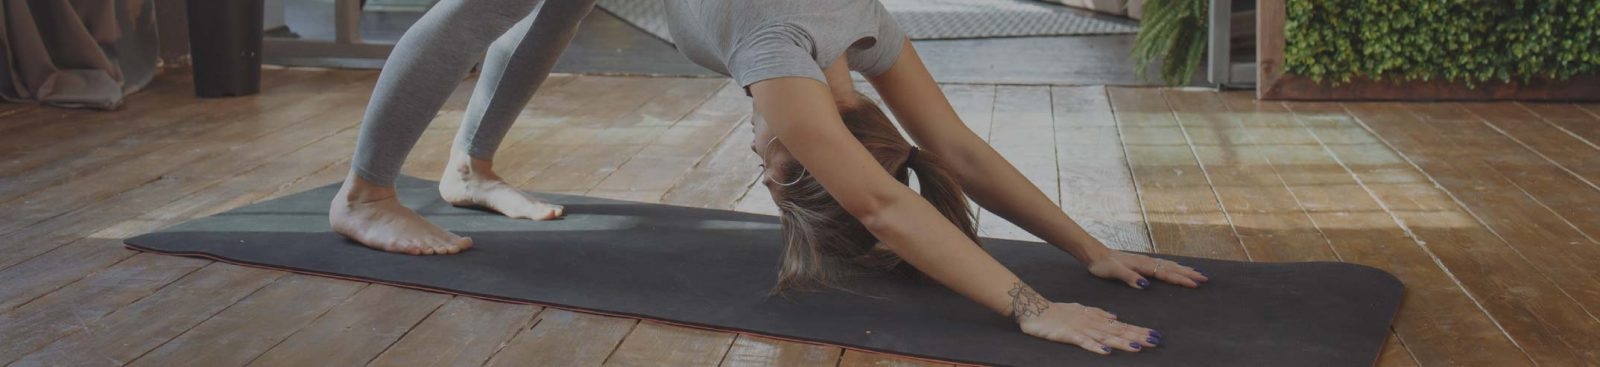 Gentle office yoga stretching with Erika Khanna image